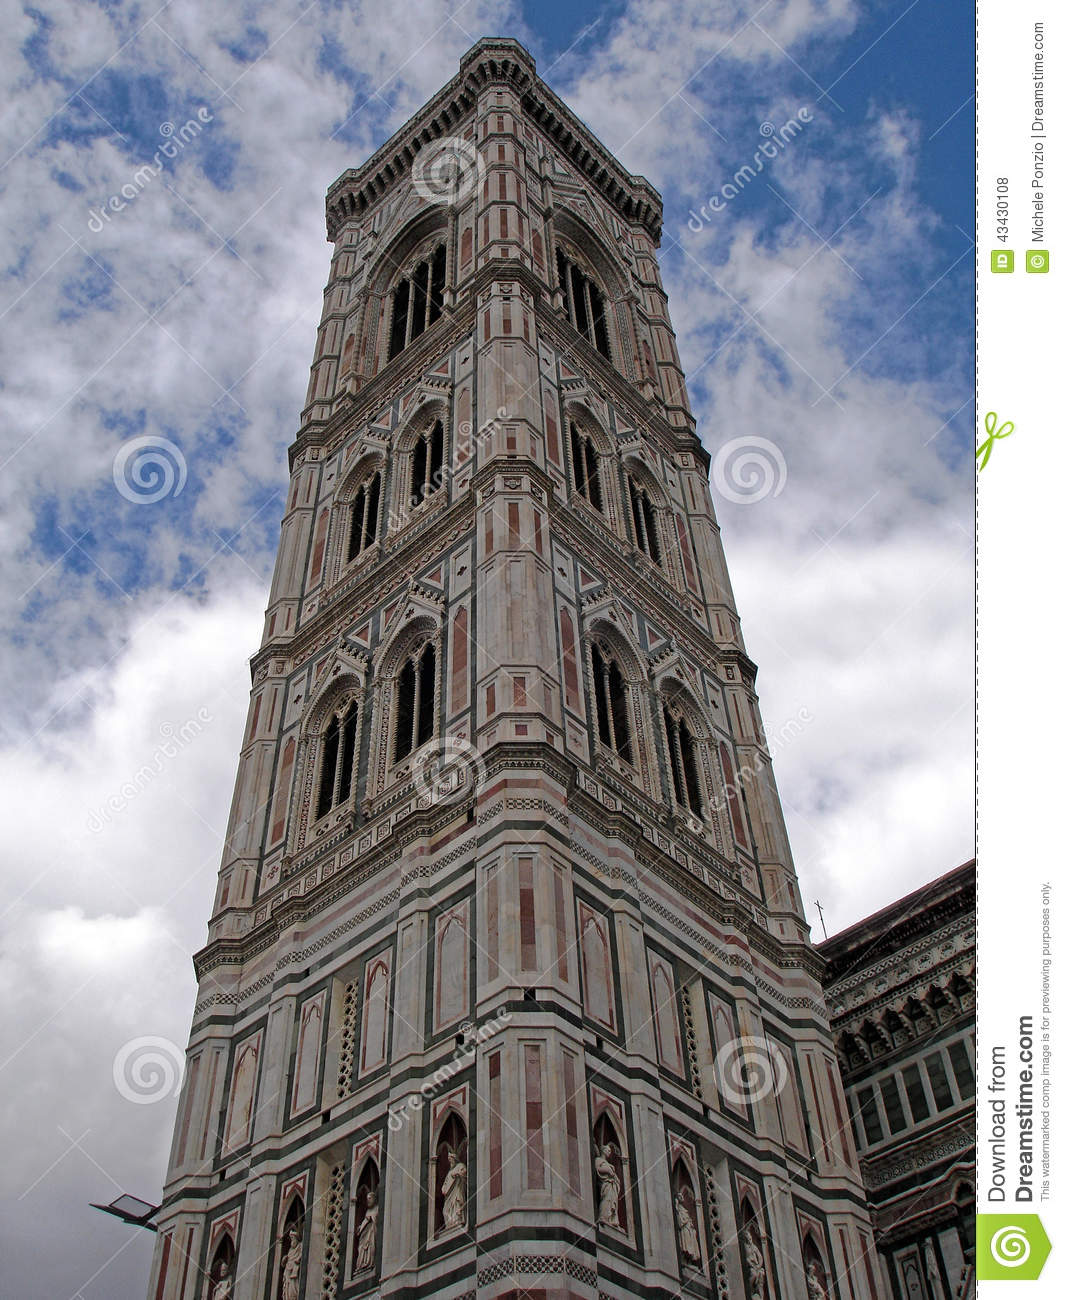 Tower of Florence